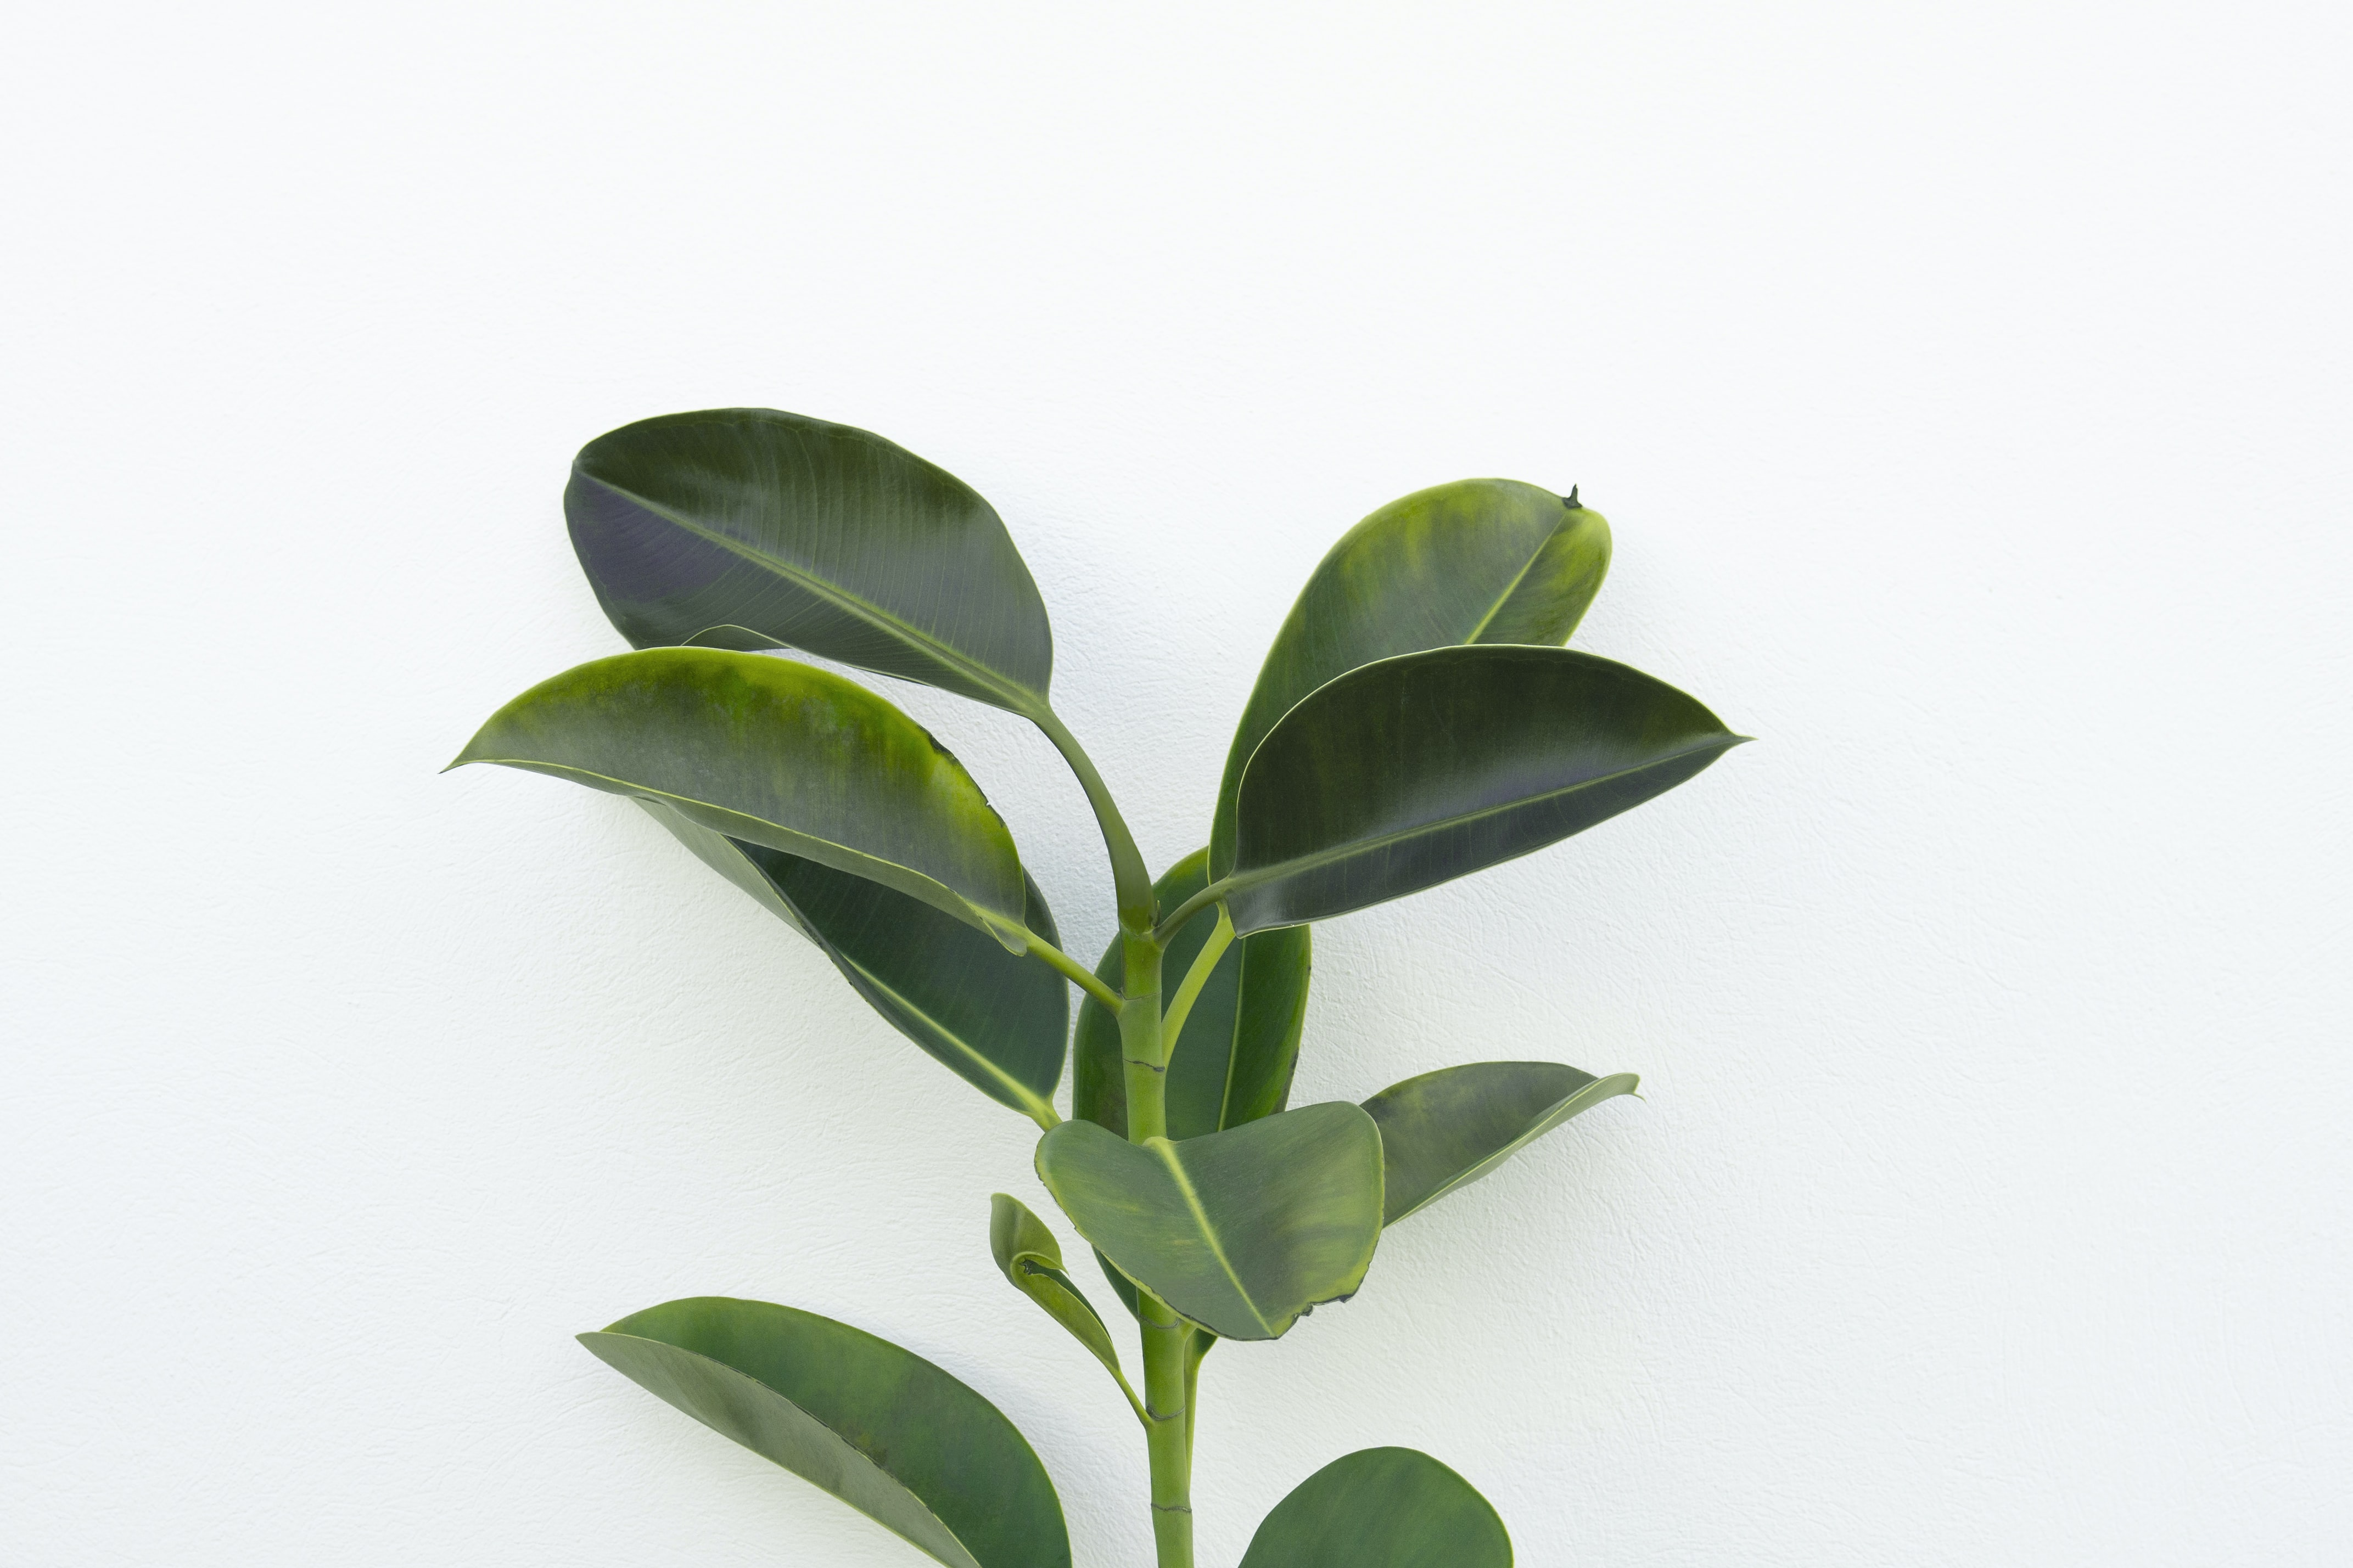 close-up photography of green rubber plant